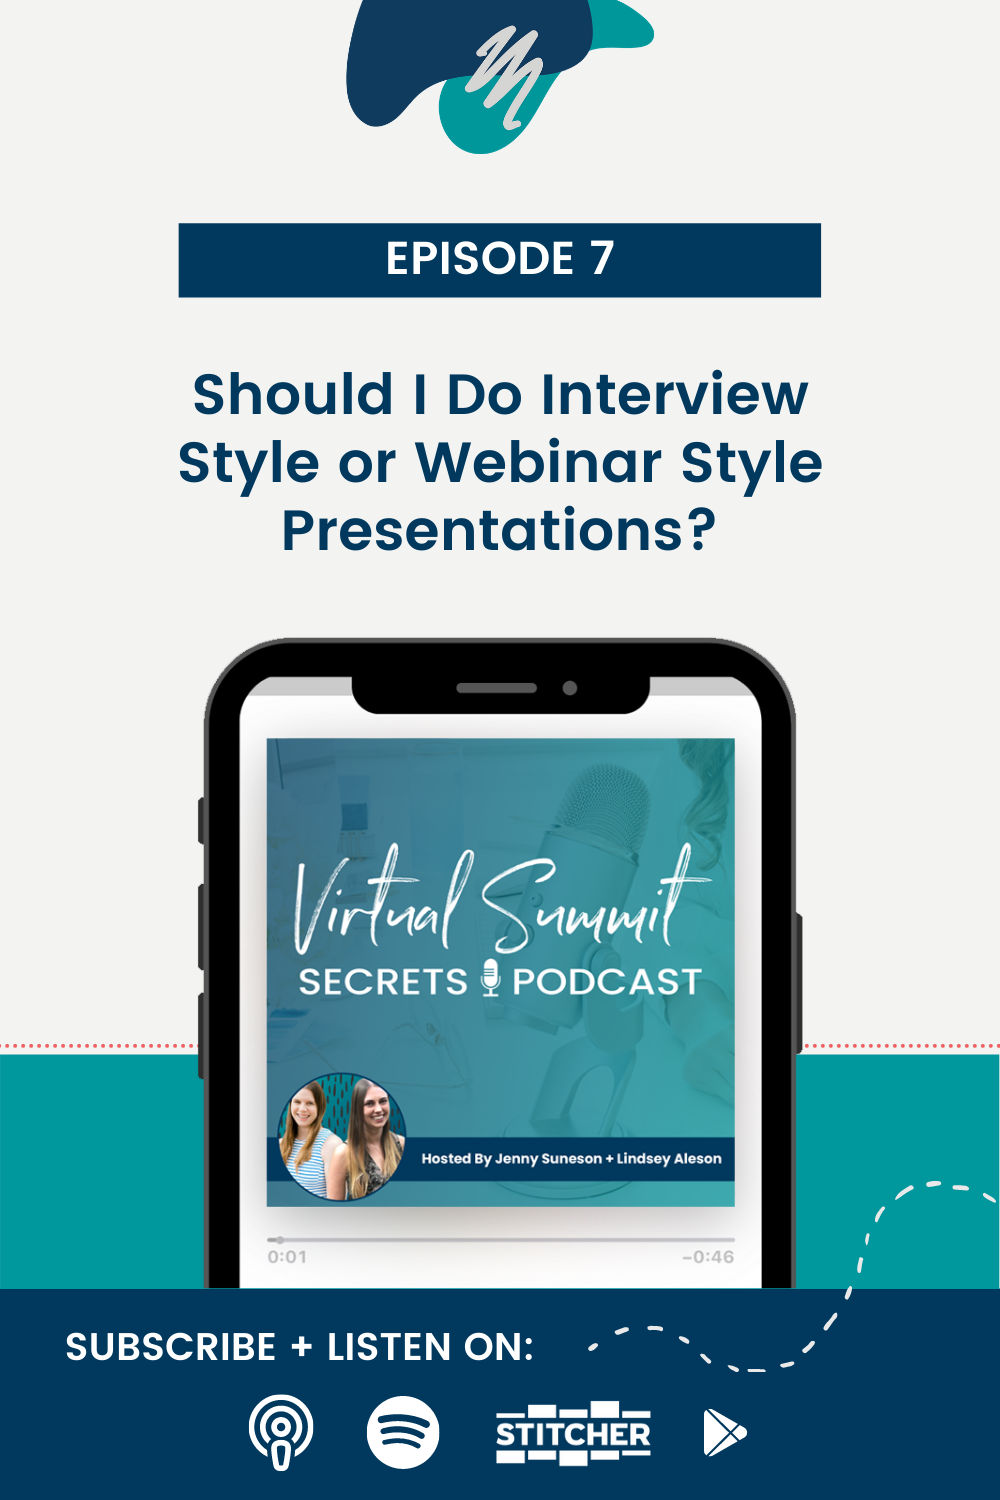 Episode 7 - Should I Do Interview Style or Webinar Style Presentations